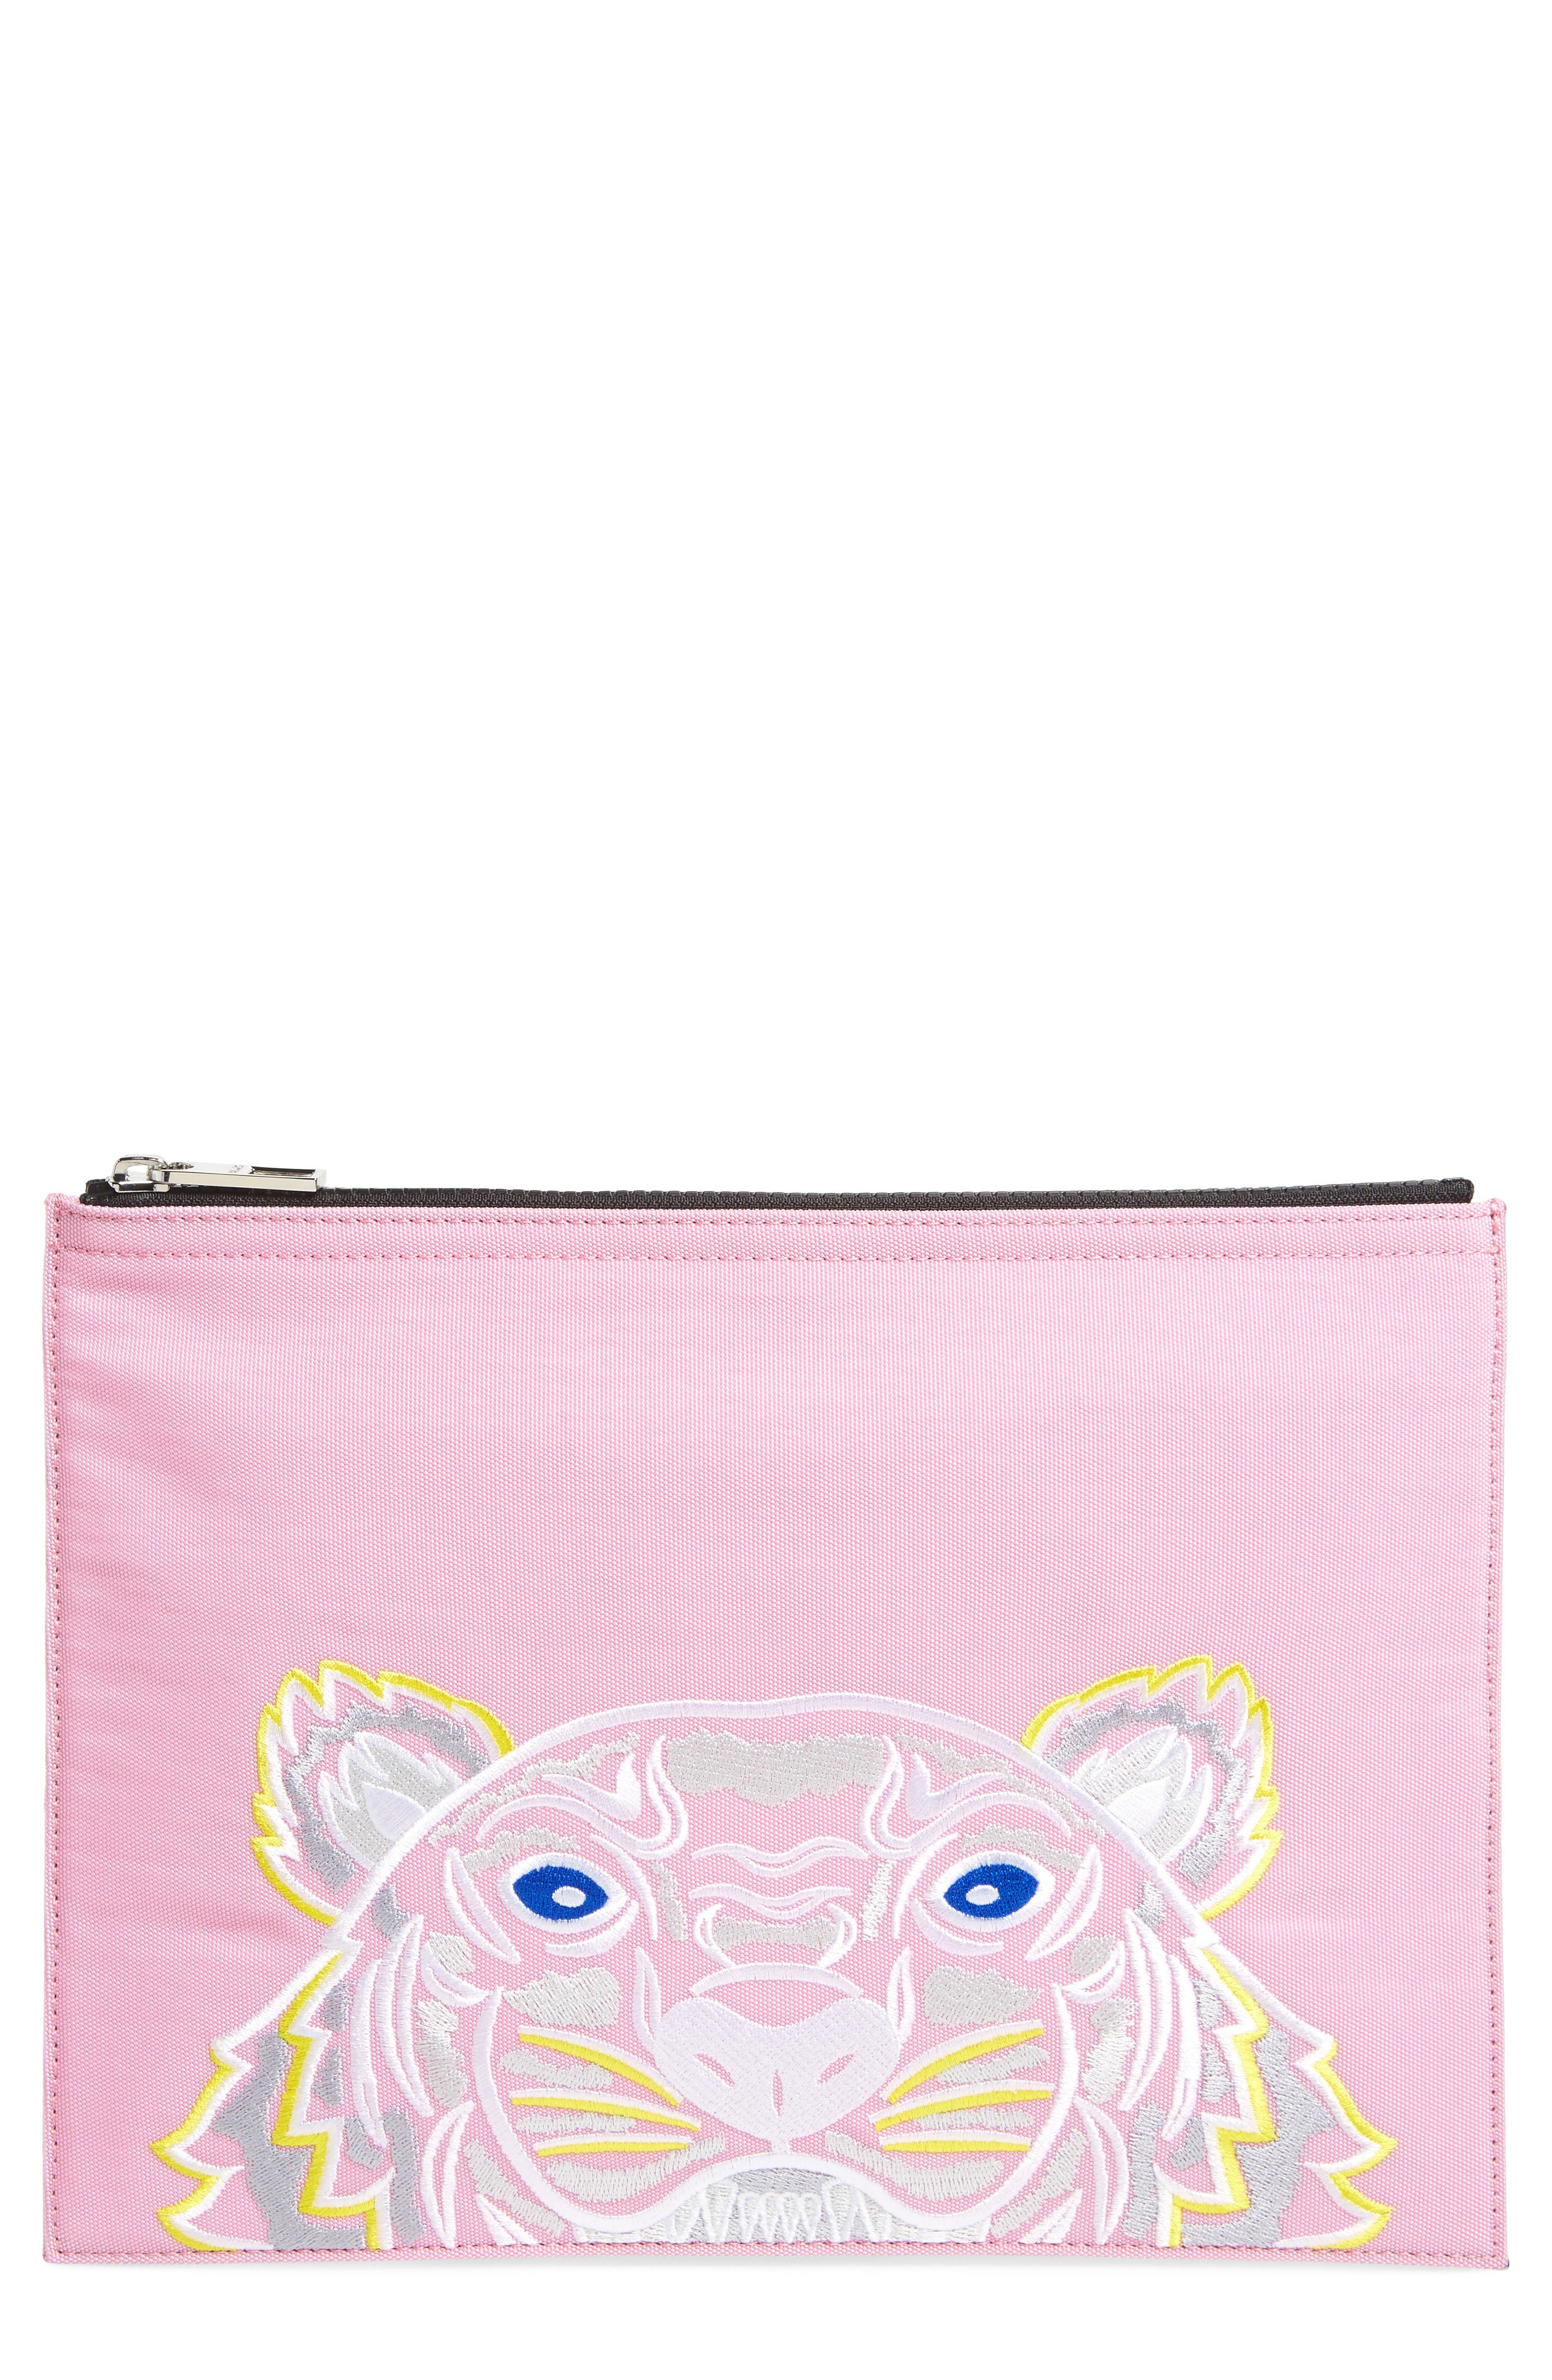 KANVAS TIGER EMBROIDERED A4 POUCH - PINK